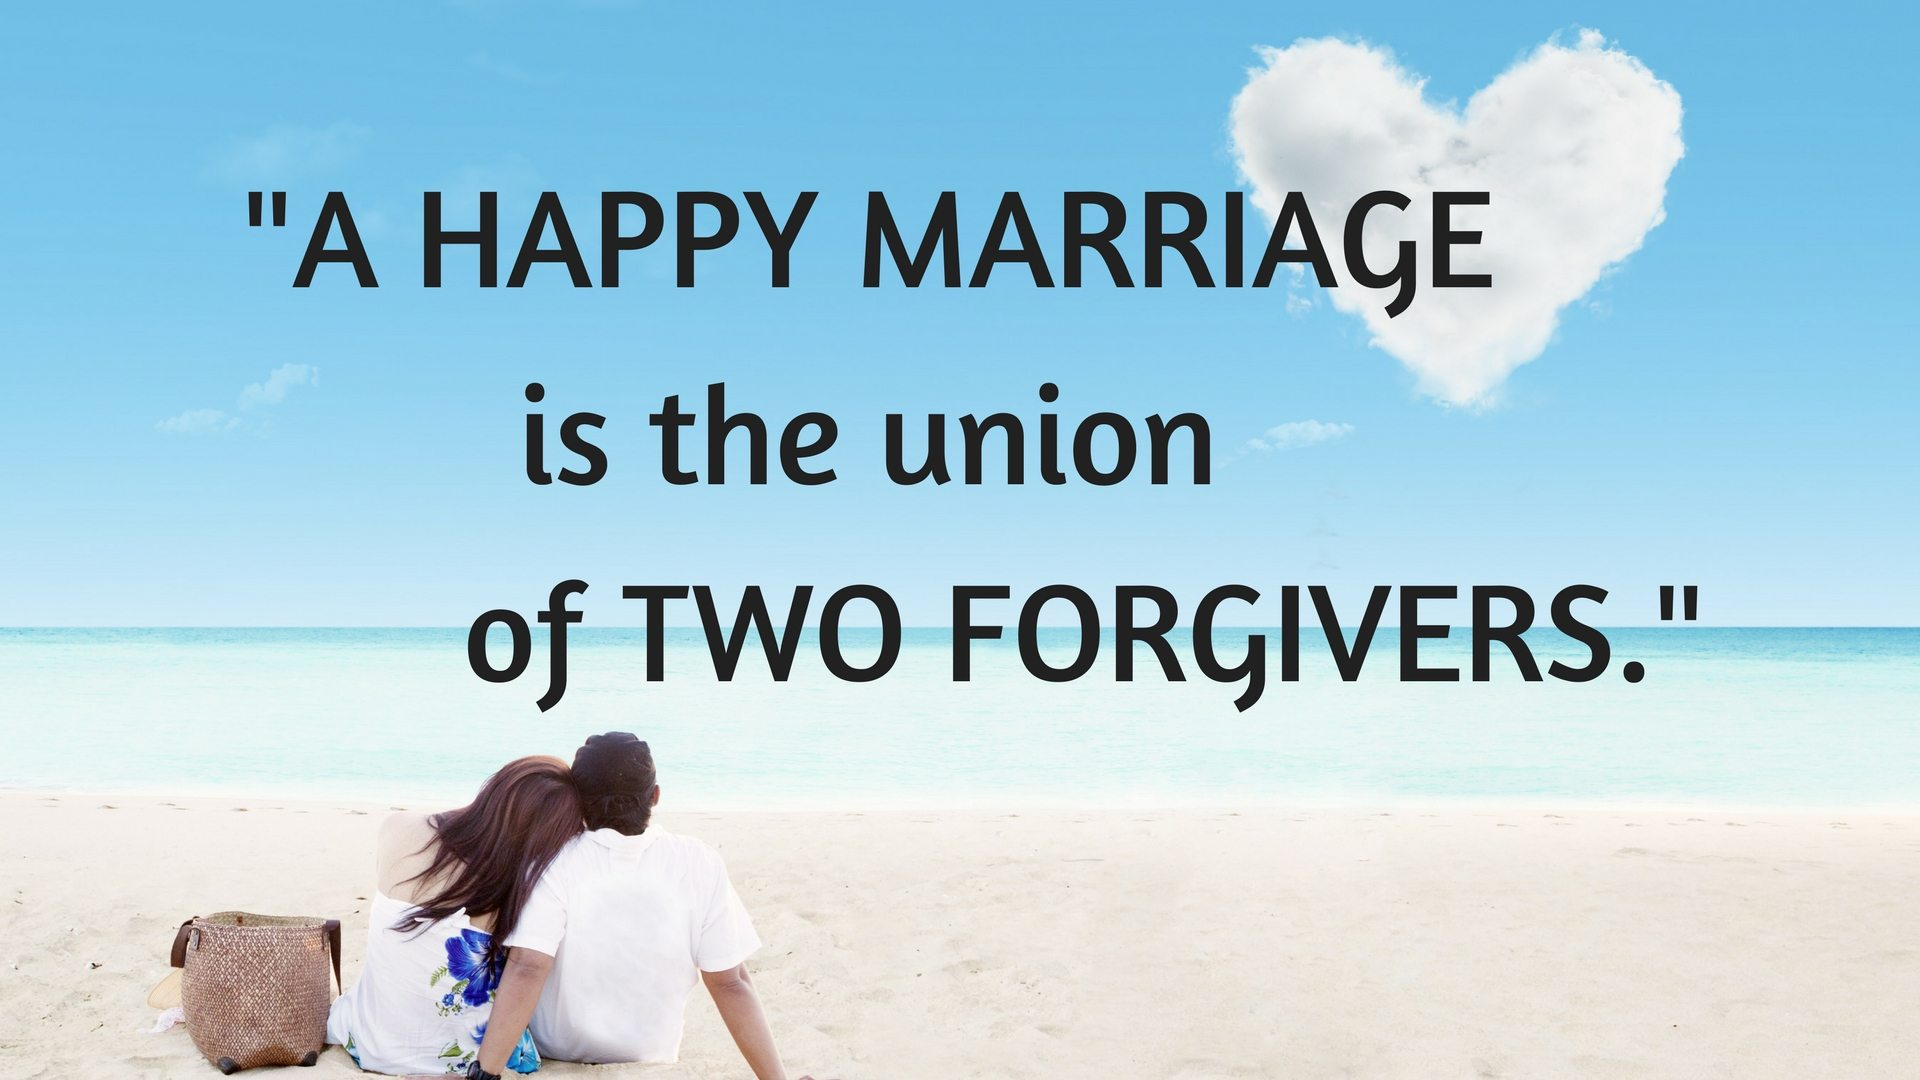 HAPPY MARRIAGE union of two forgivers. - Favored marriage advice - Stockadobe